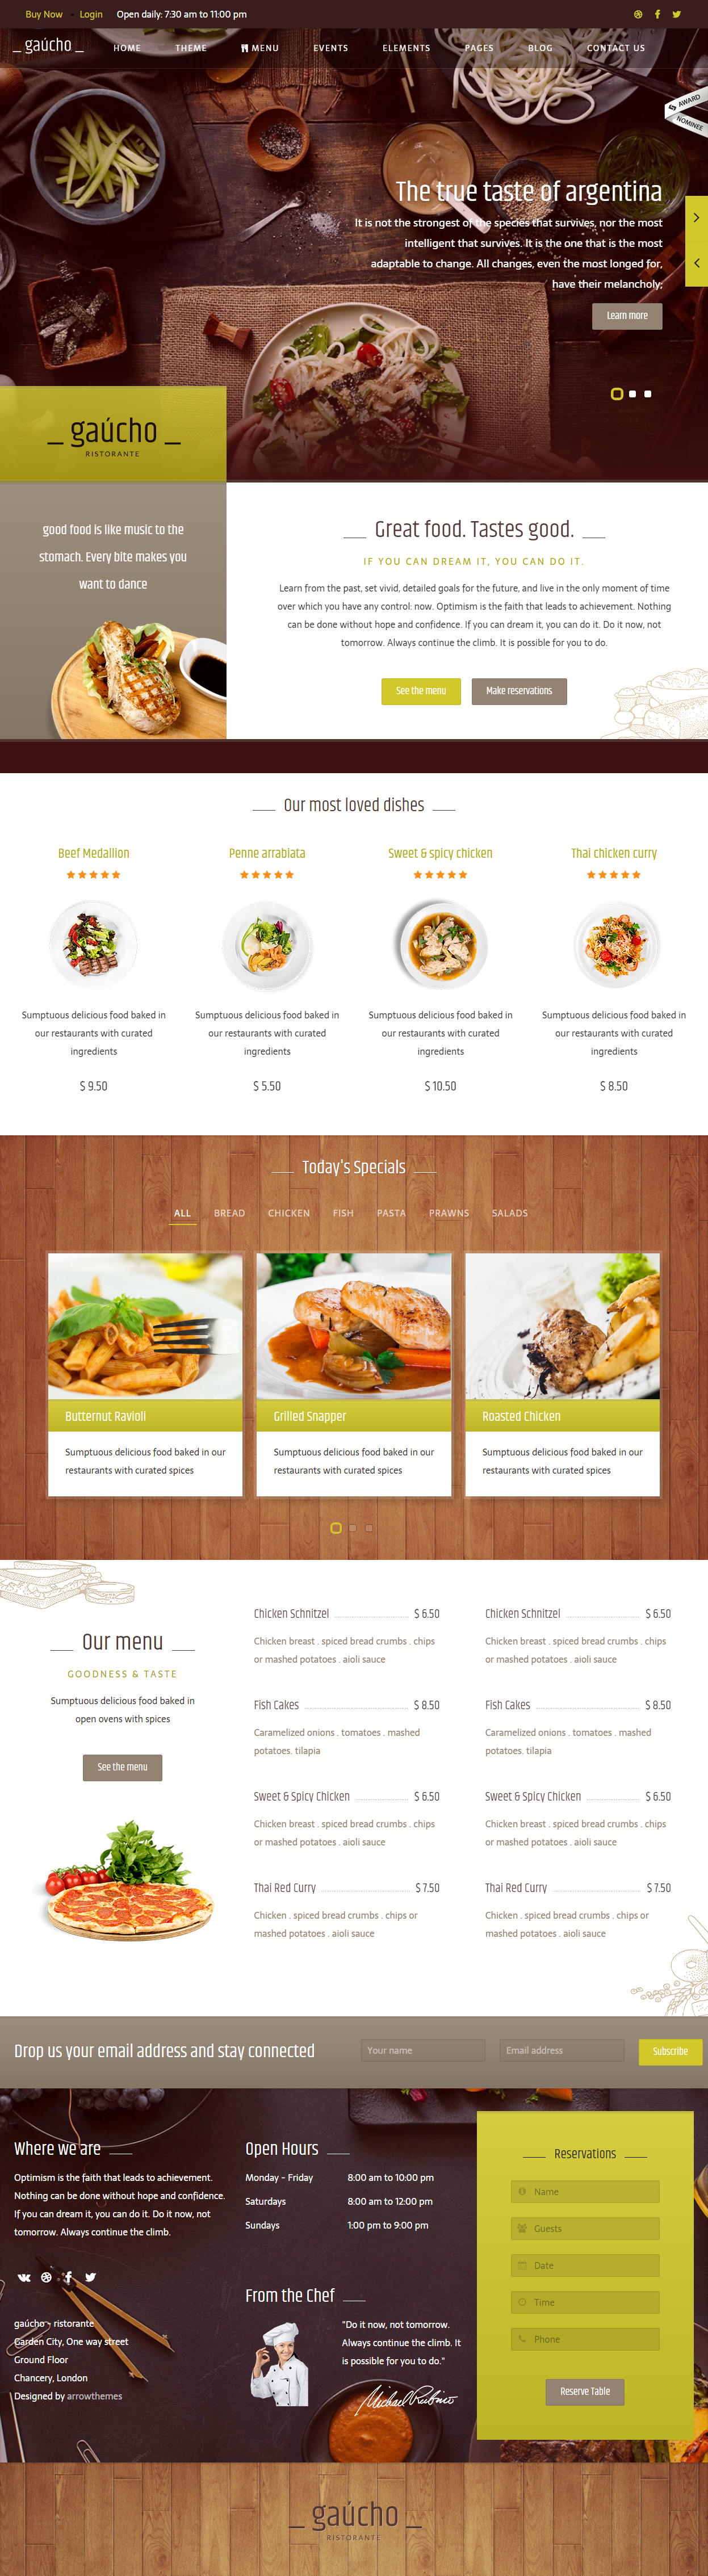 20 best cafe and restaurant website templates in 2018 responsive